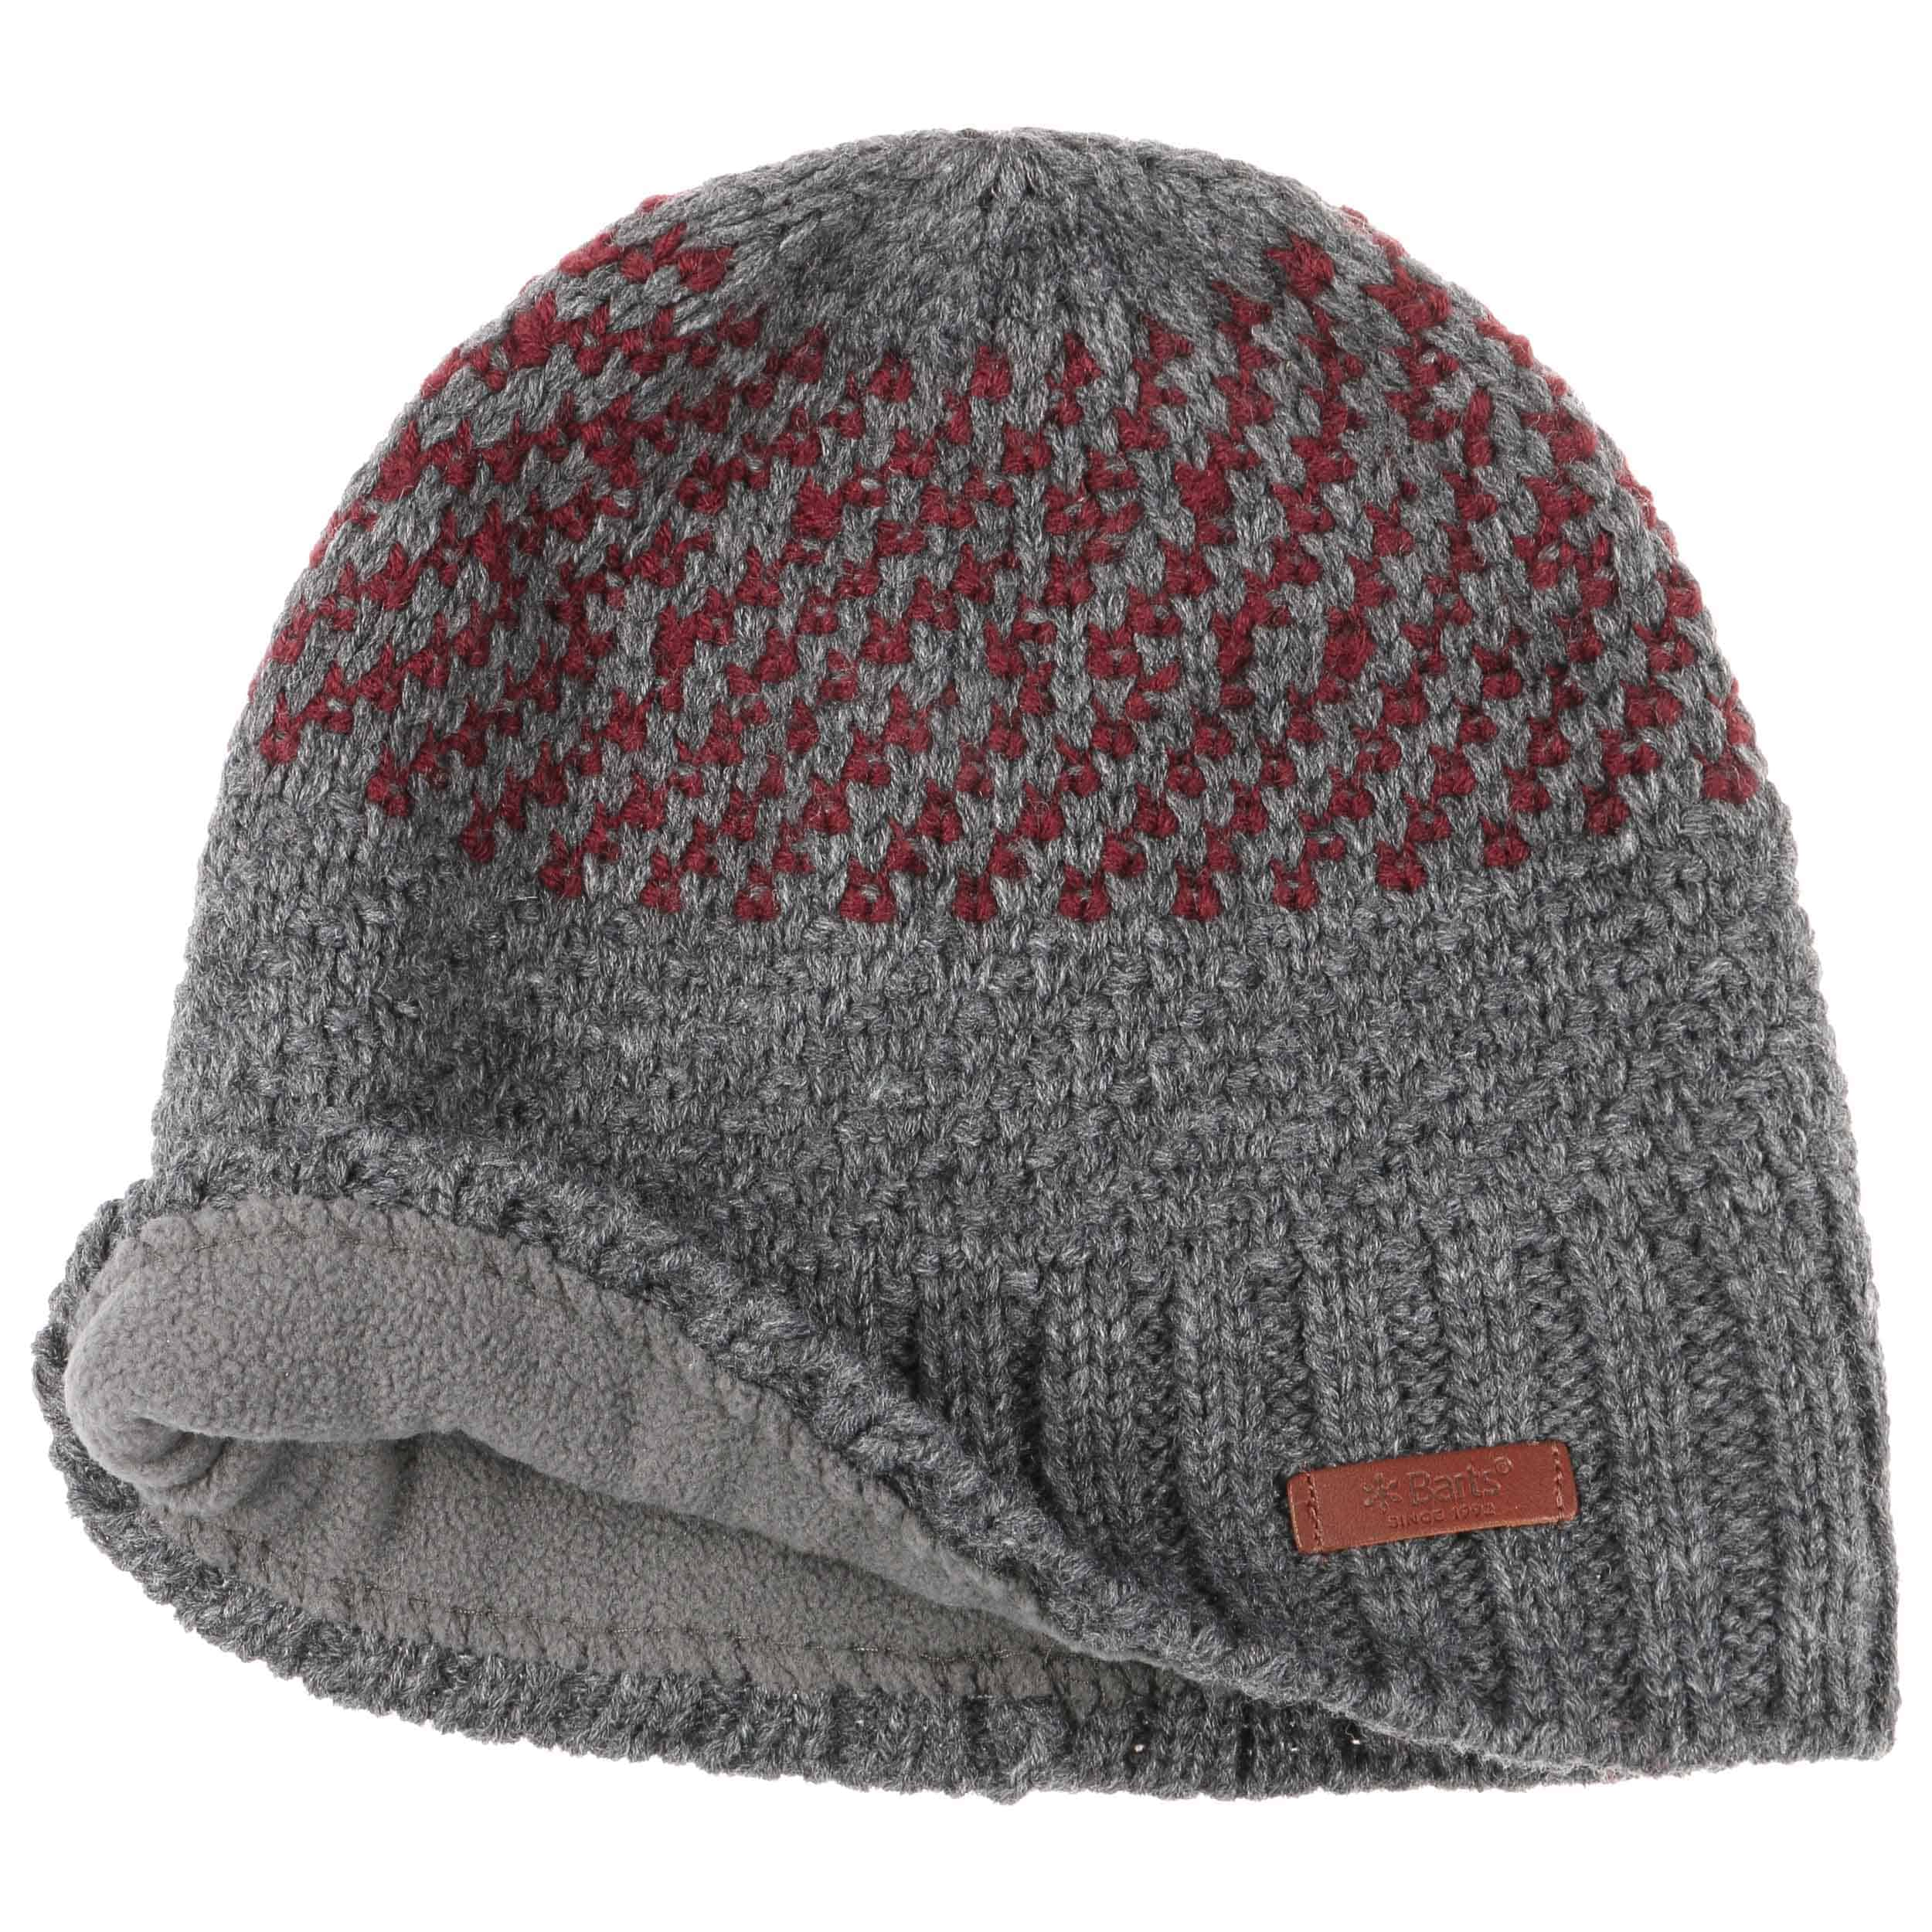 Berretto Beanie Marco by Barts - antracite 1 ... 4aaa90c29886